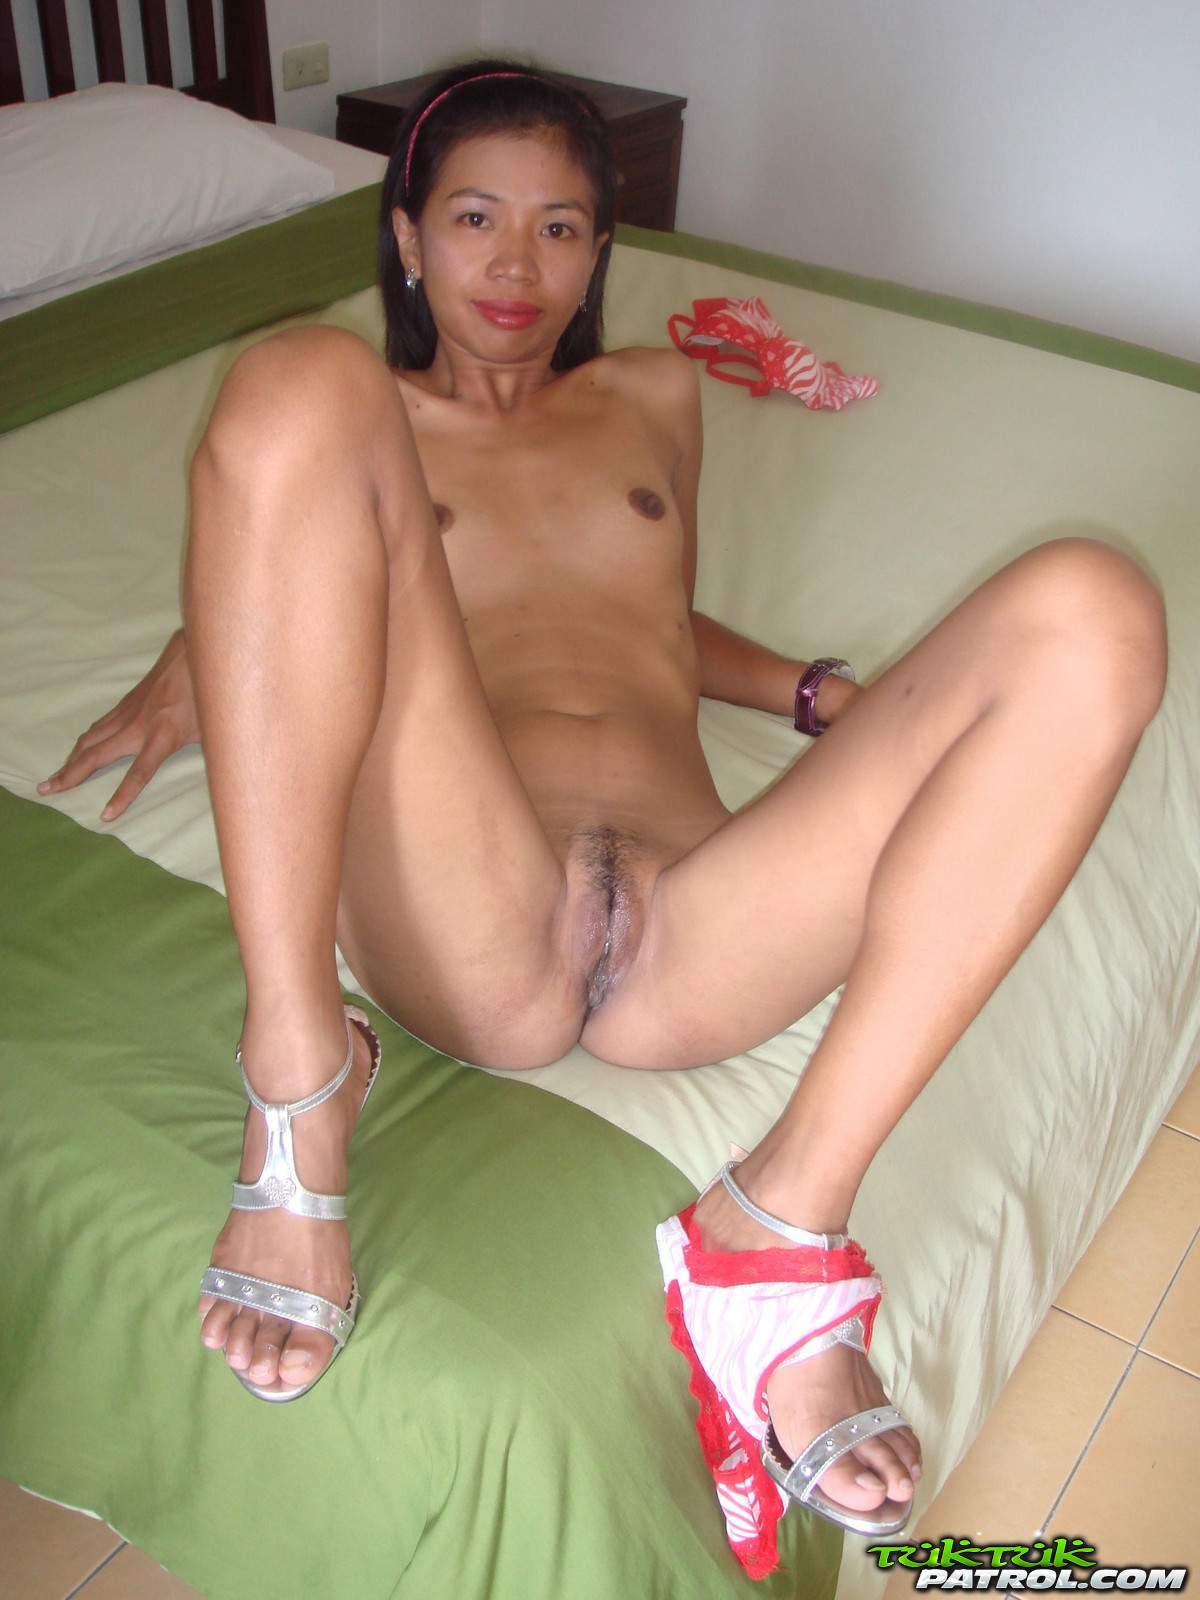 Thai nude porn you have